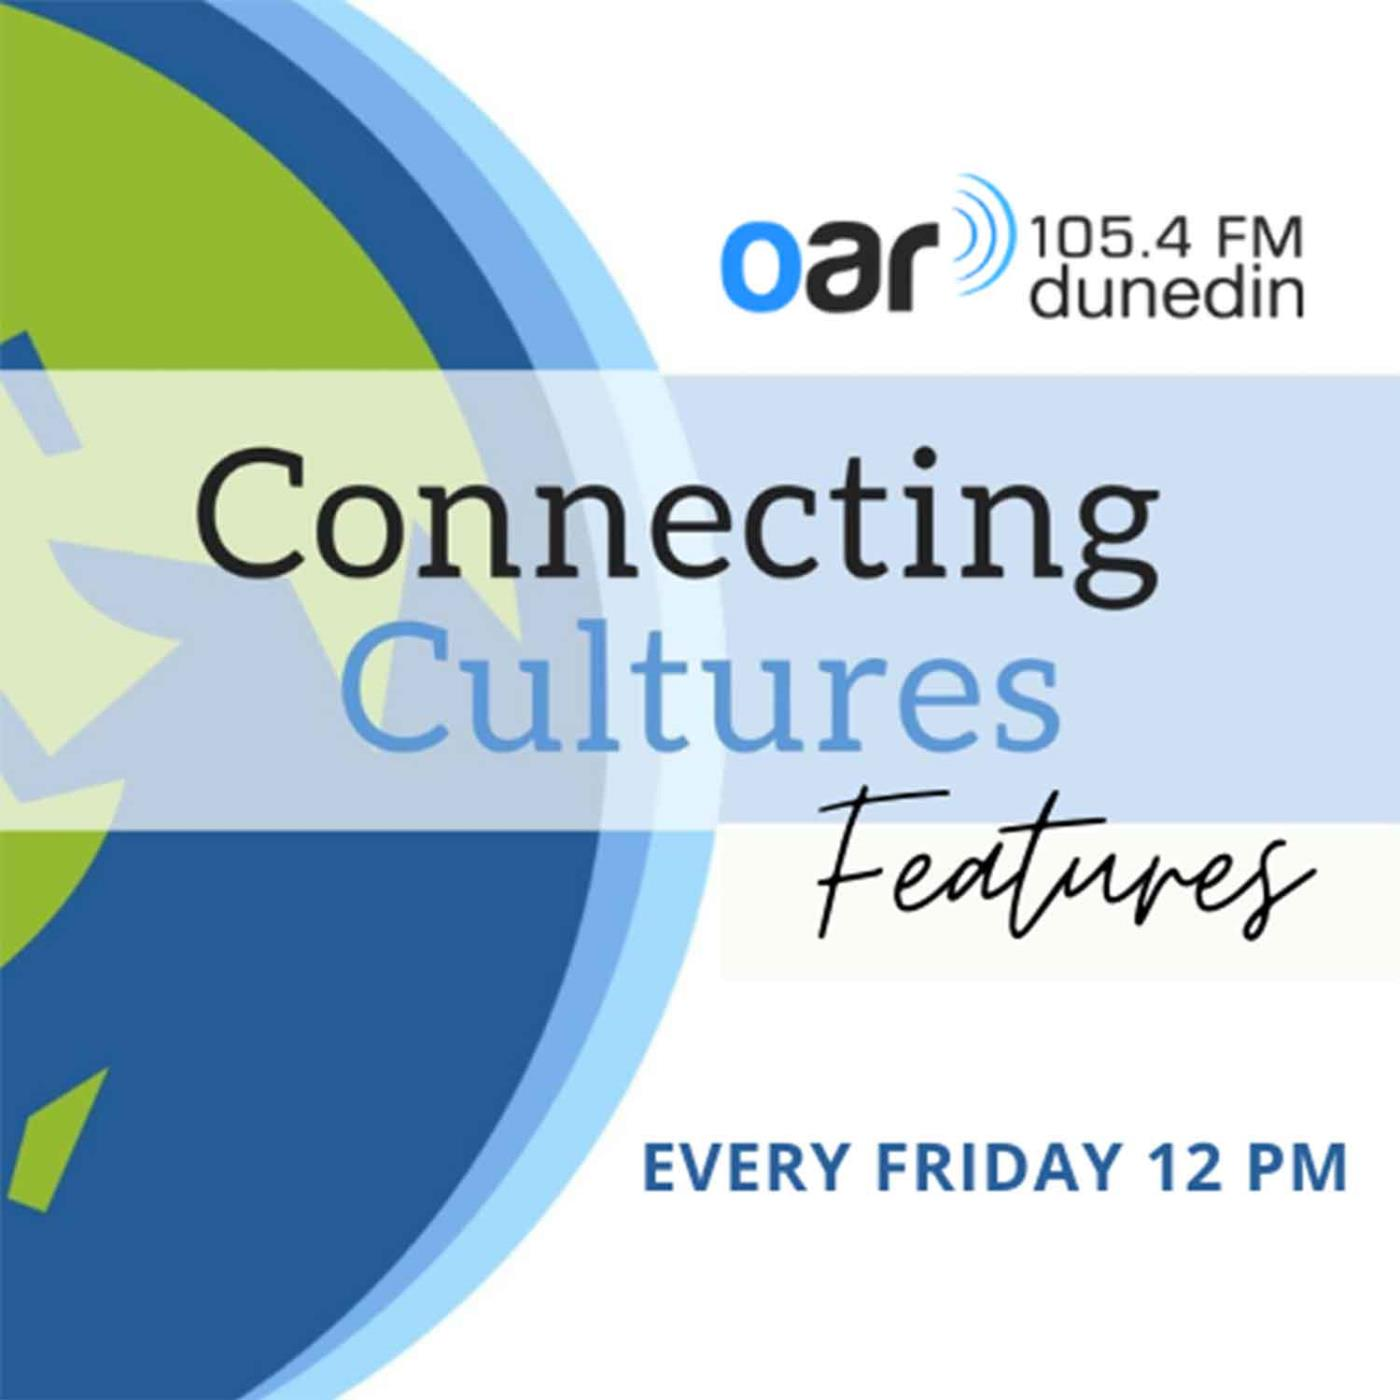 Connecting Cultures Features